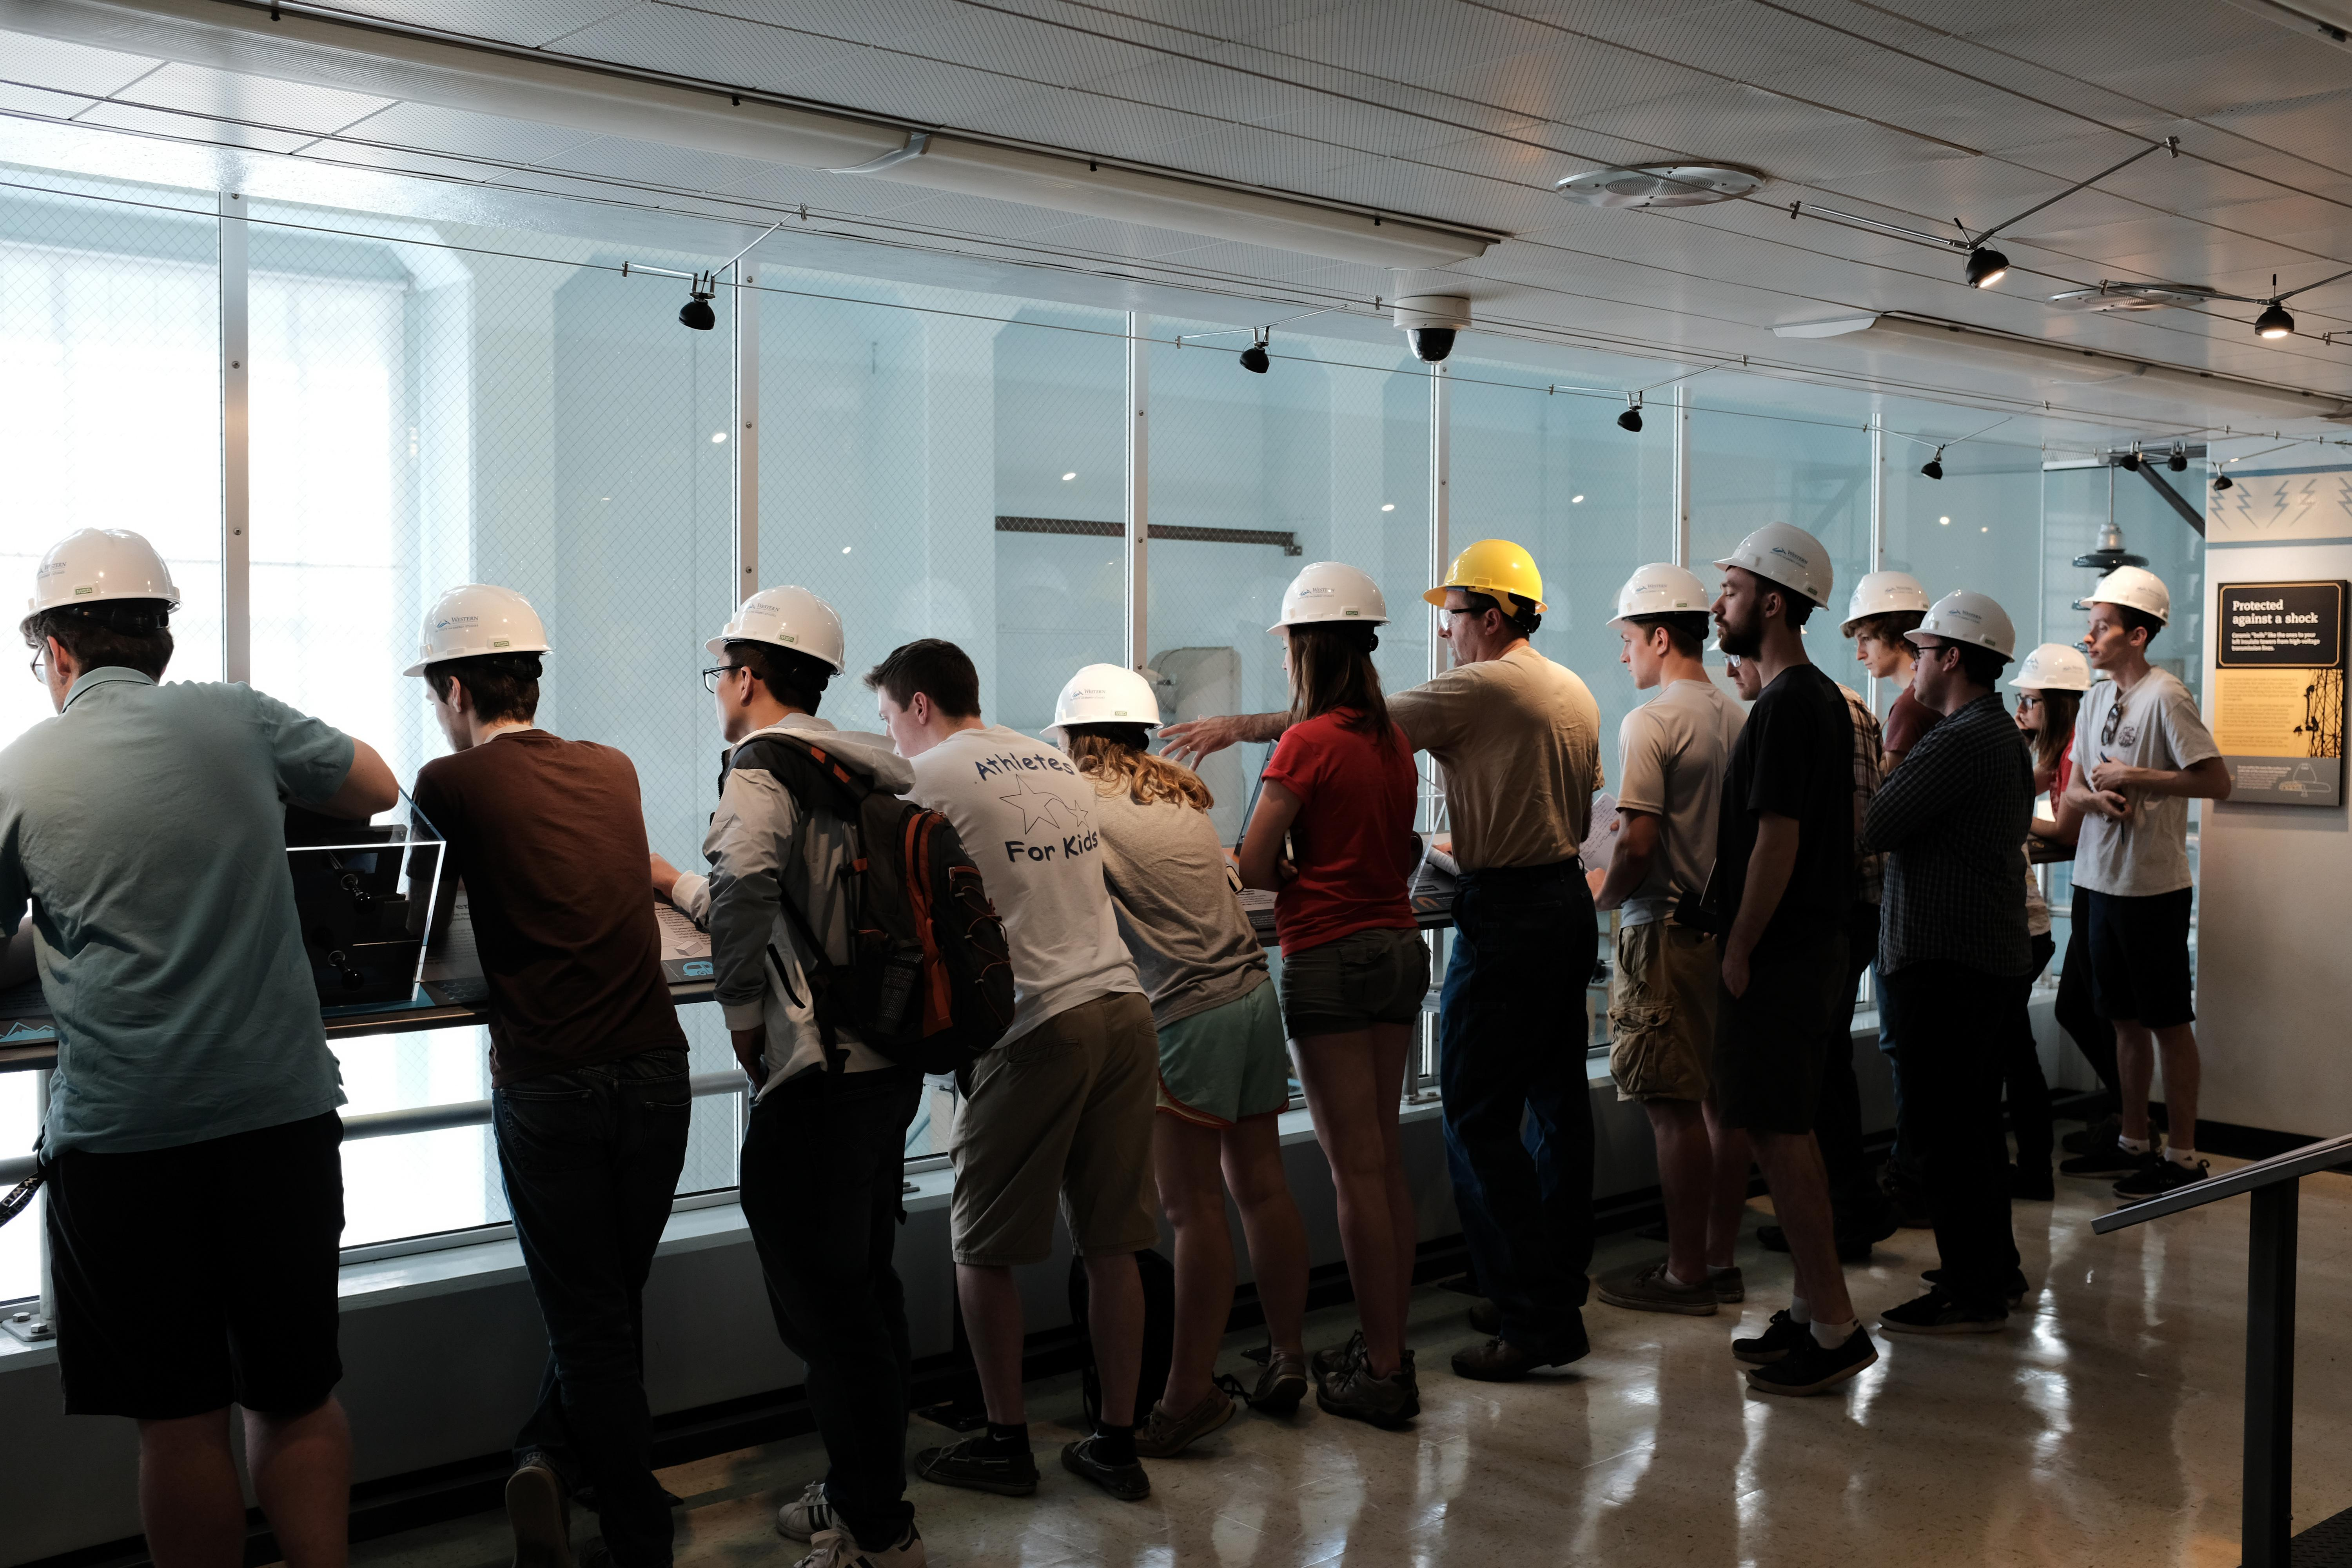 students wearing hard hats and looking over a railing